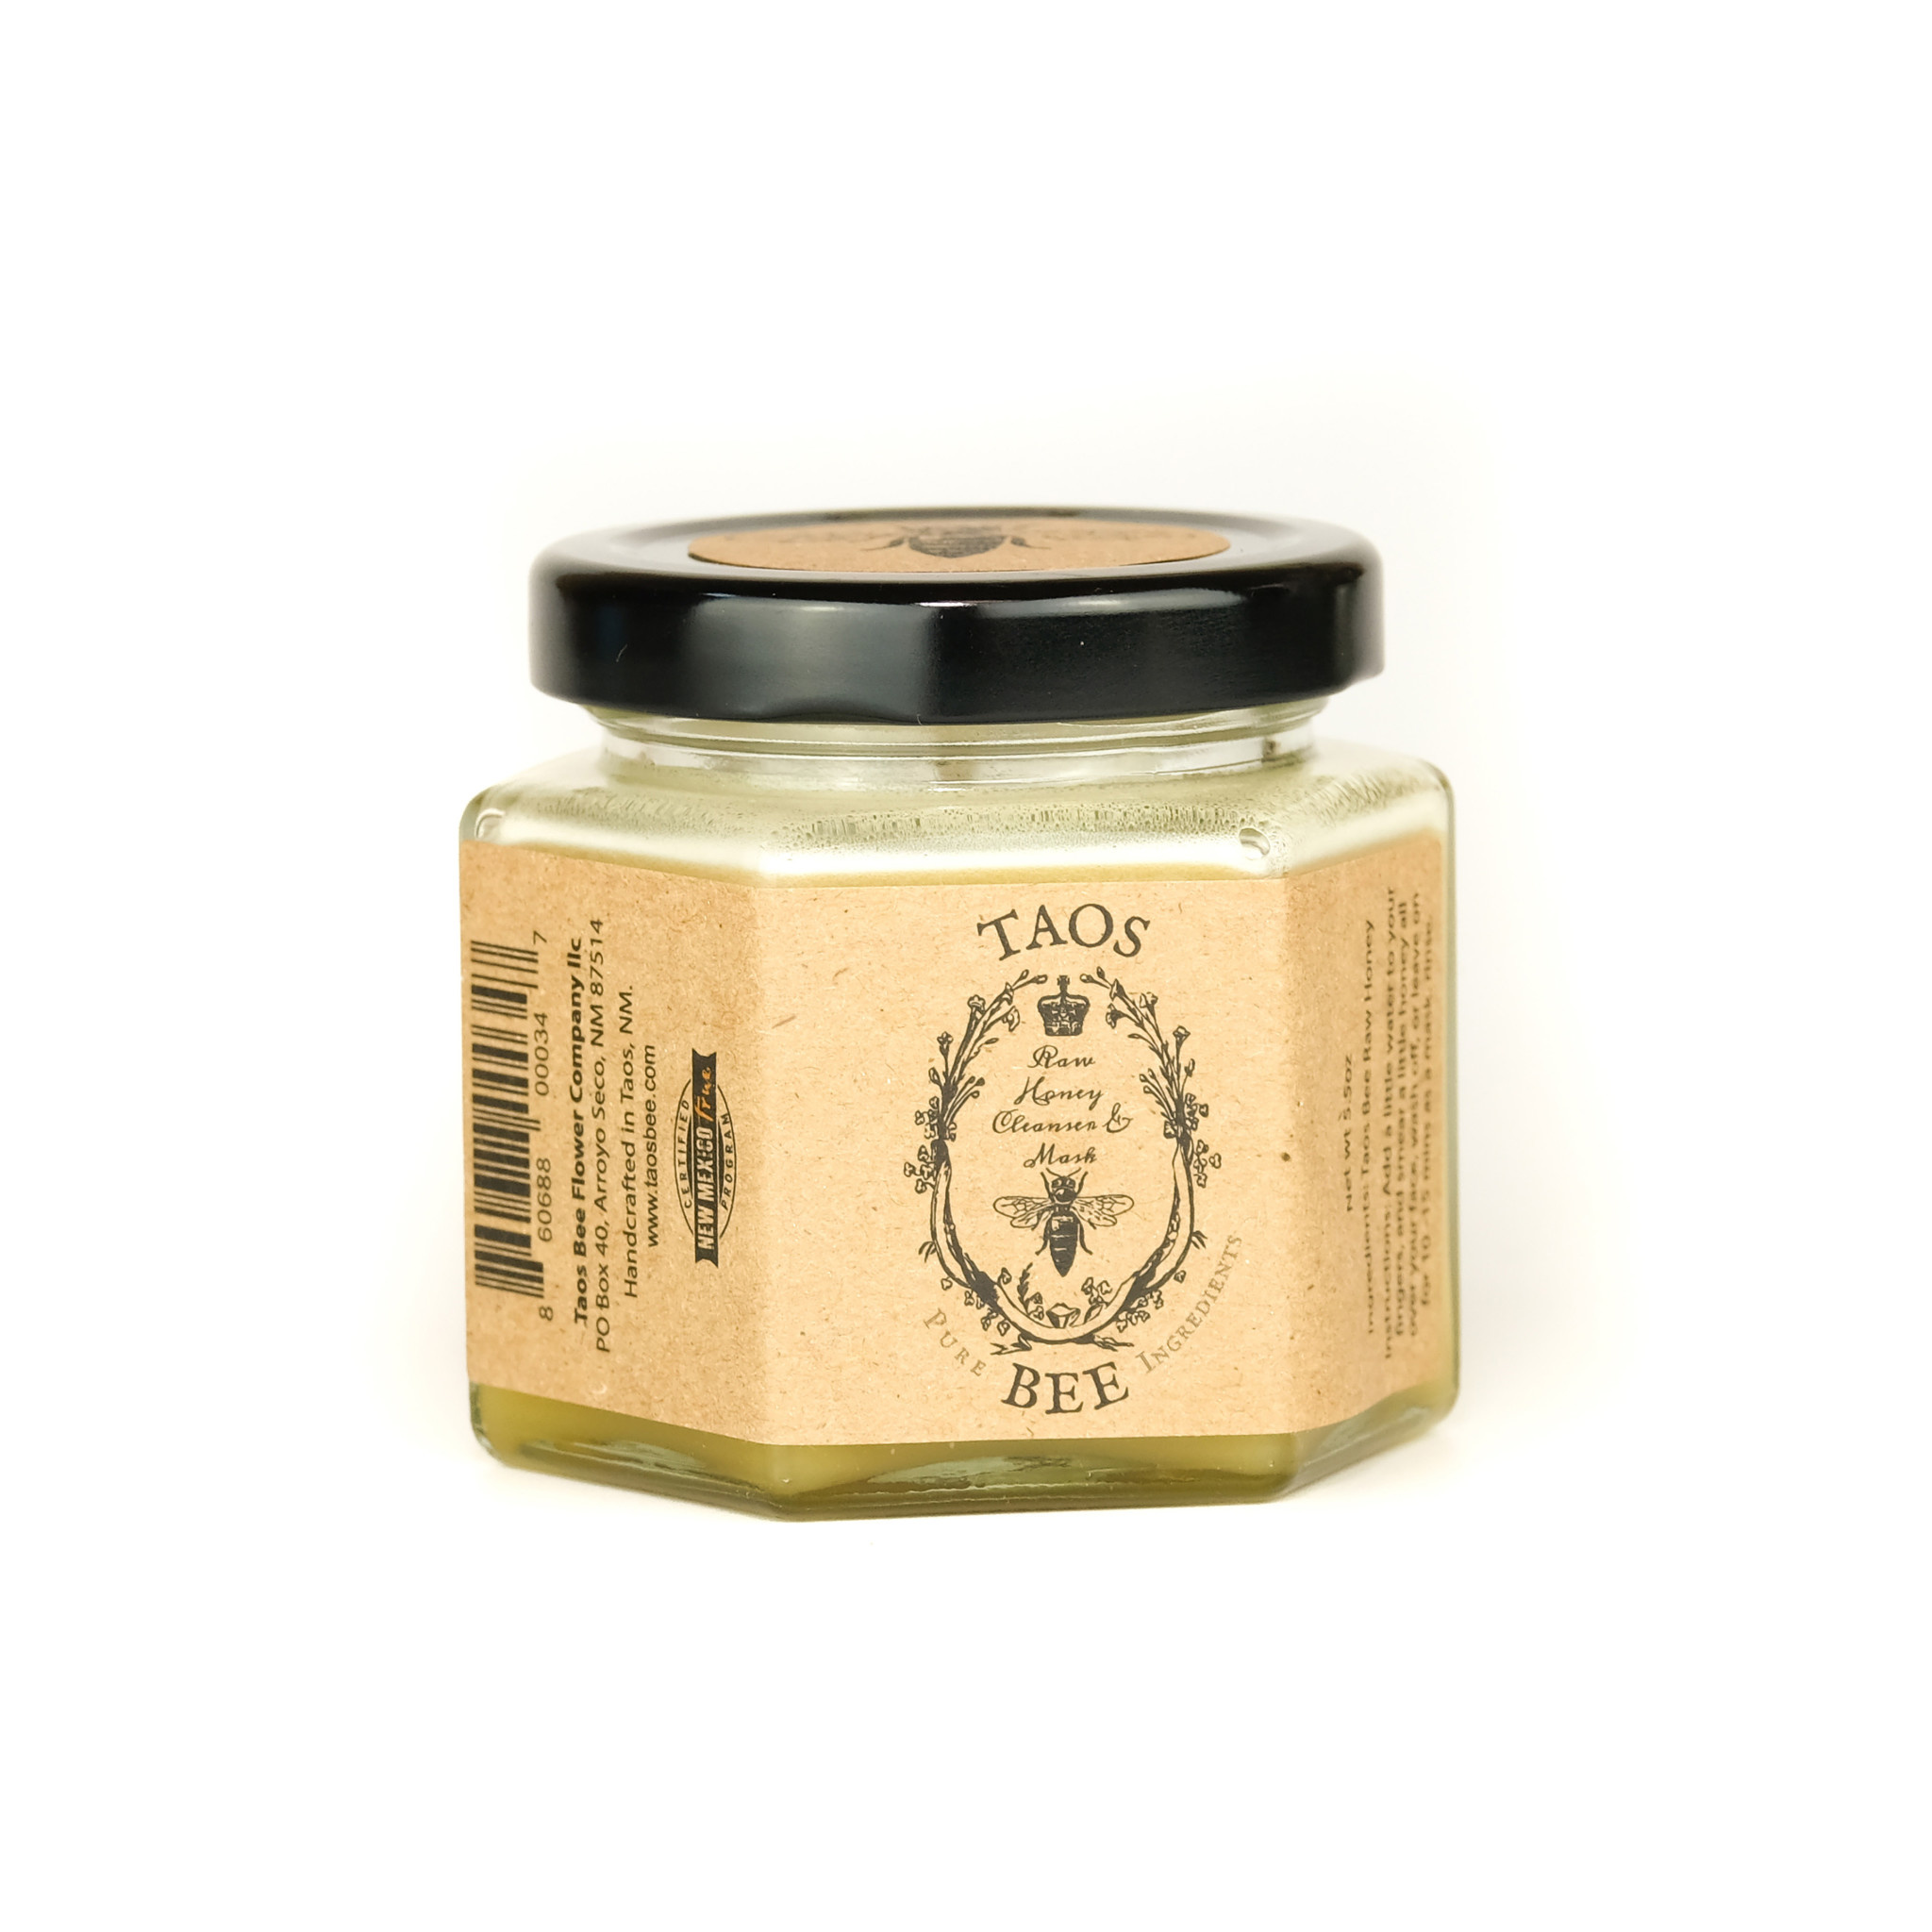 Taos Bee Raw Honey Cleanser